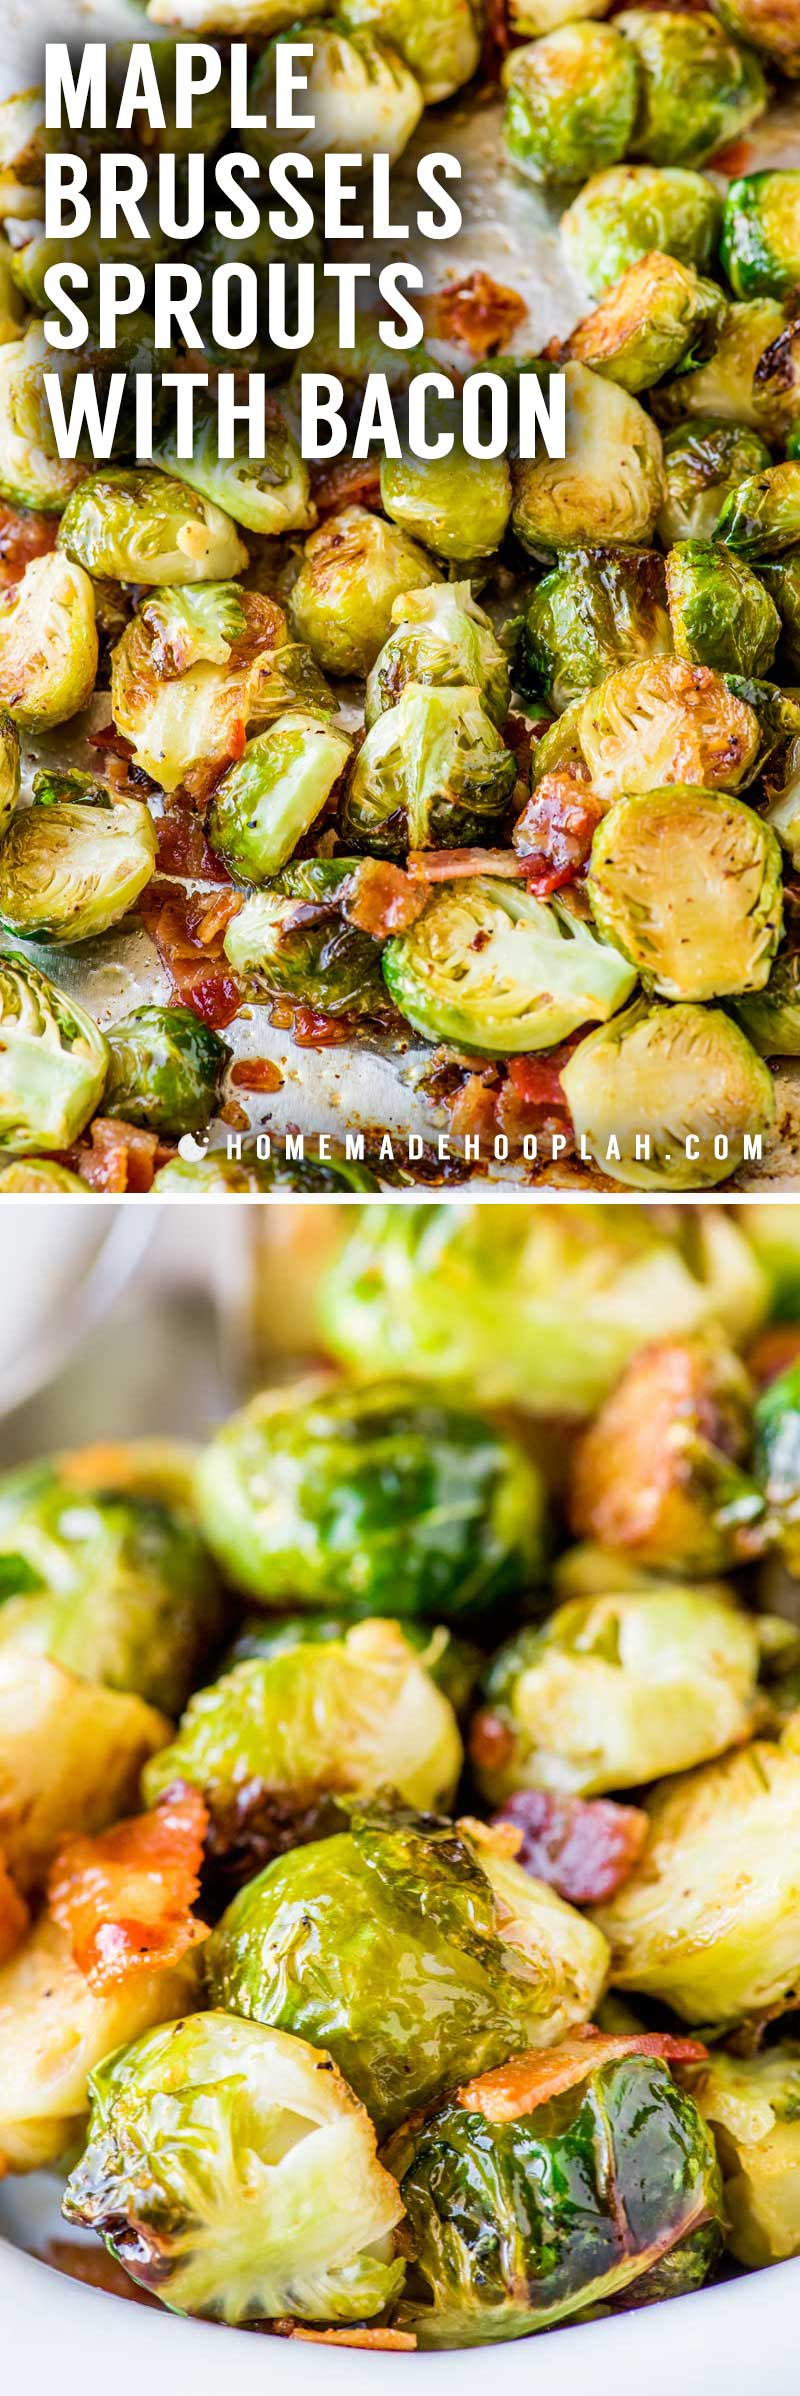 Maple Brussels Sprouts with Bacon! Oven-roasted Brussels sprouts flavored with crispy bacon and sweet maple syrup. It's an easy side dish to whip up for any dinner or holiday! | HomemadeHooplah.com